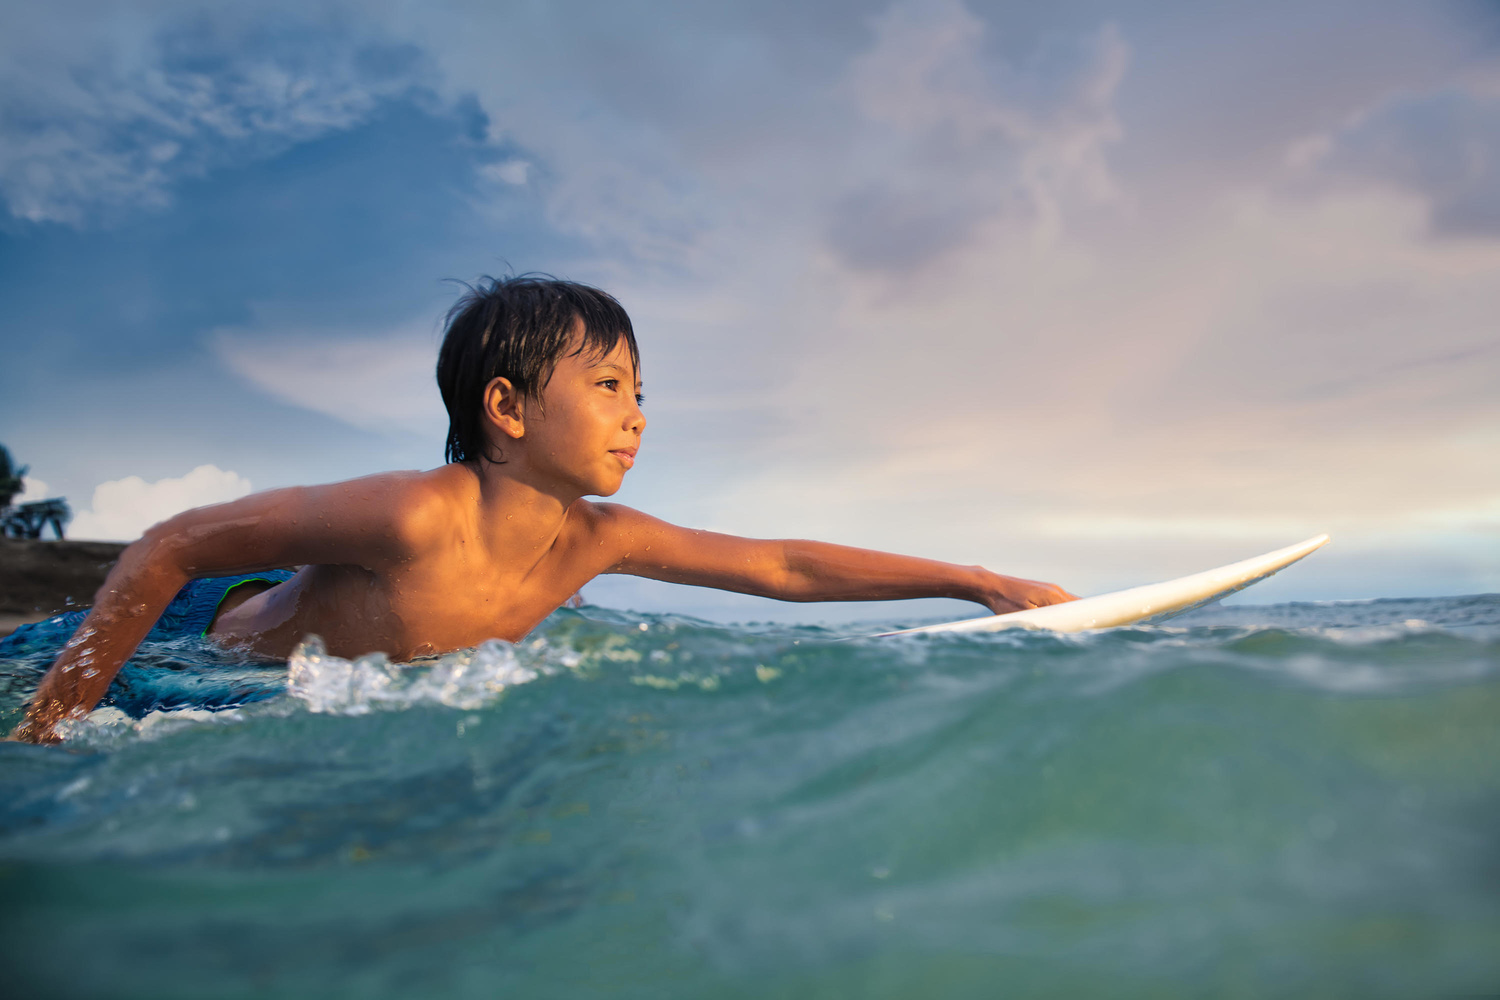 how to photograph swimmers or surfers underwater